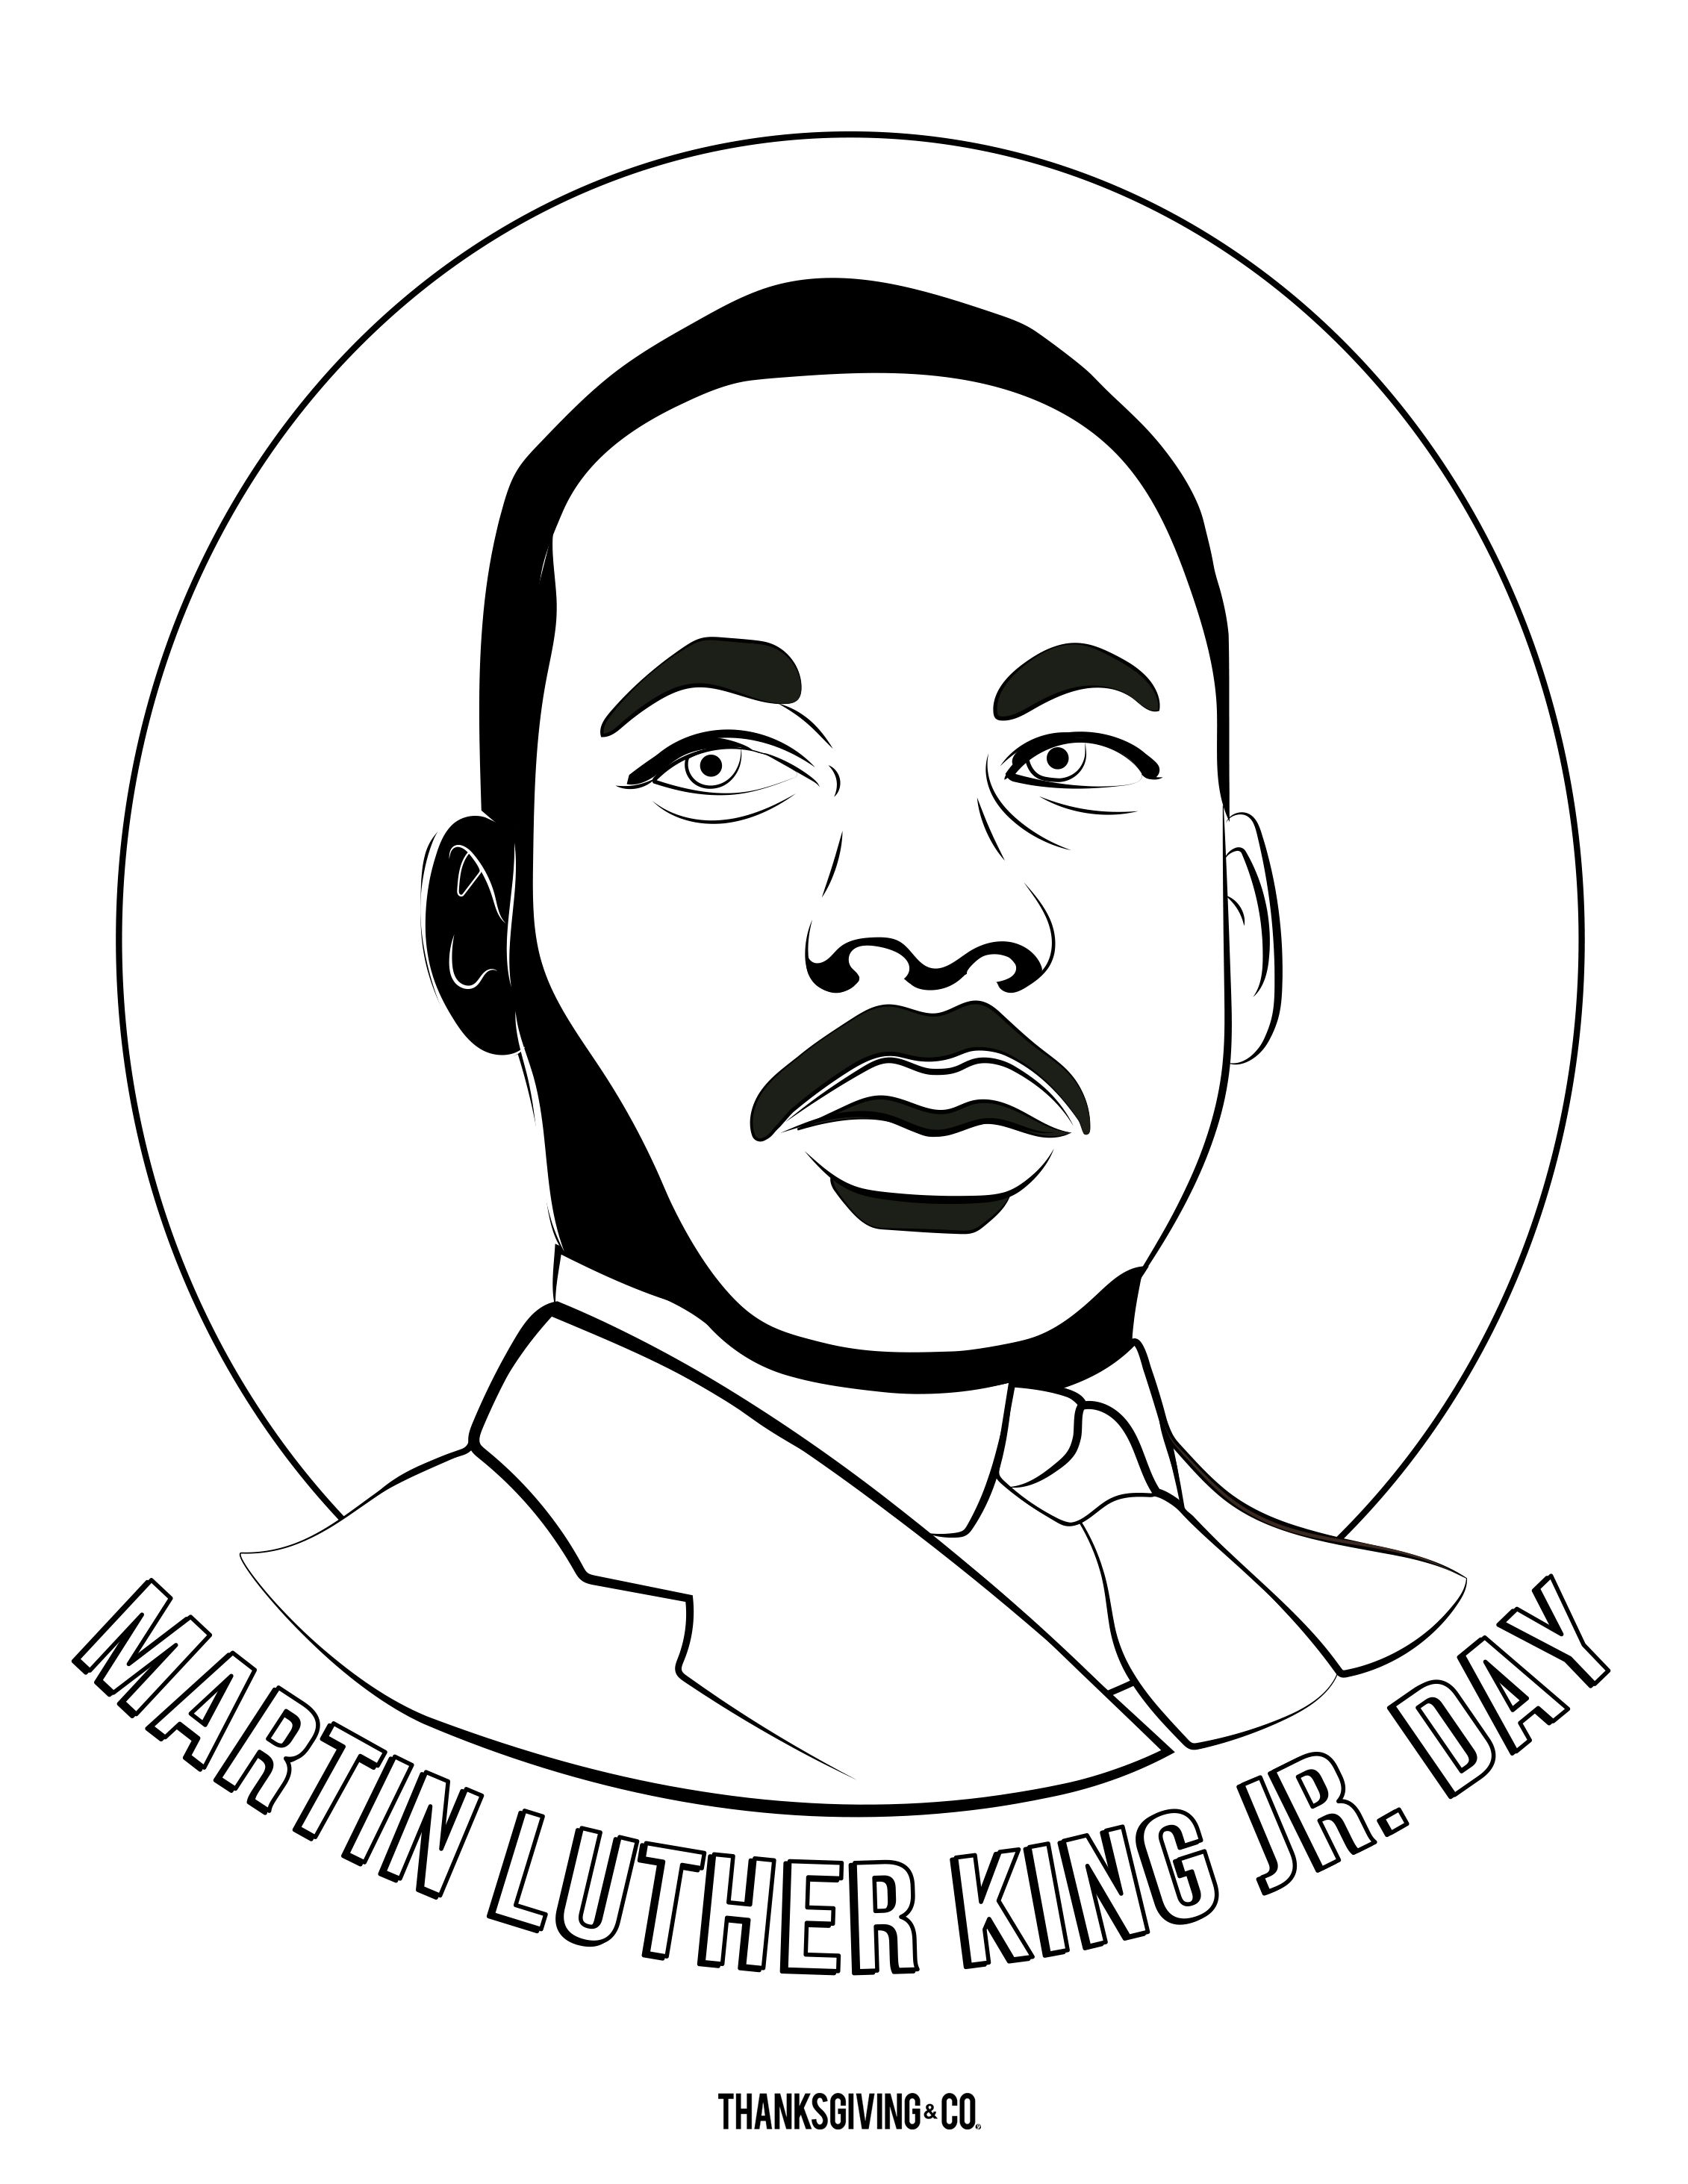 Share These Fun Martin Luther King Jr Coloring Pages With Your Children And Help Teach Them The Meaning Of The Holiday Martin Luther King Jr King Jr Martin Luther King